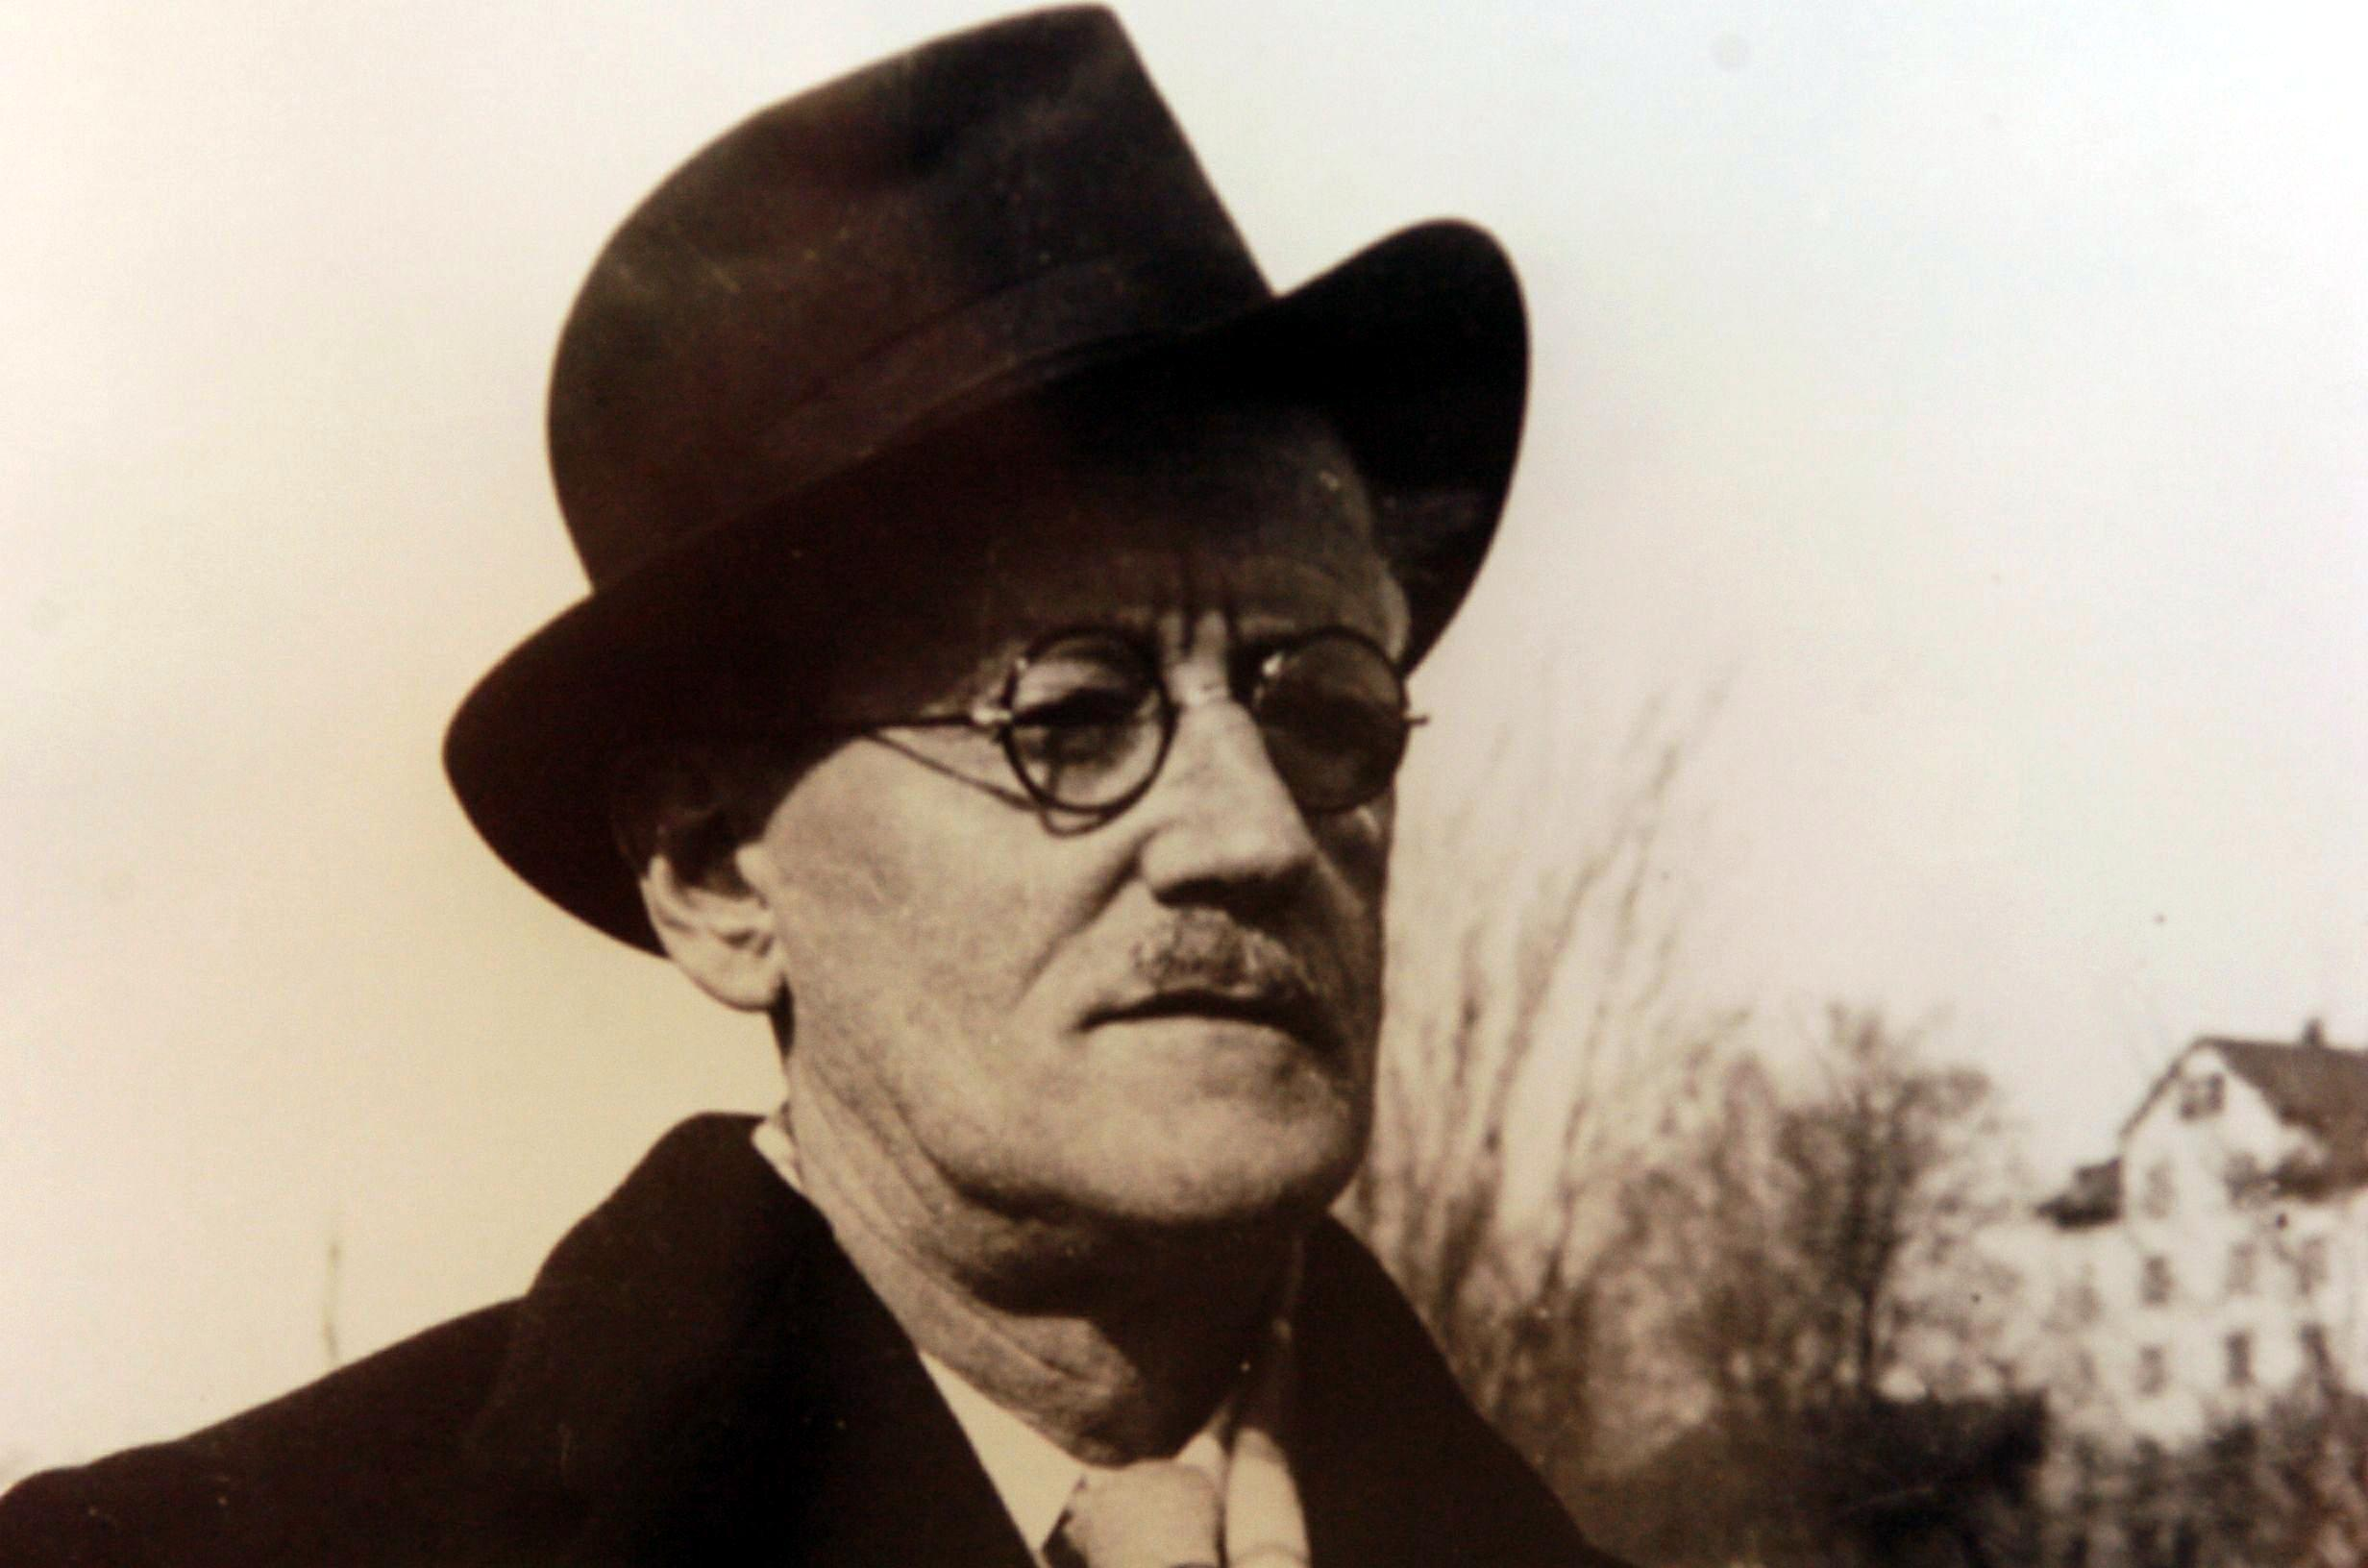 the chronicles of stephen dedalus in james joyces a portrait of the artist as a young man Free essay: james joyce's alter ego in a portrait of the artist as a young man works cited missing in james joyce's a portrait of the artist as a young man.